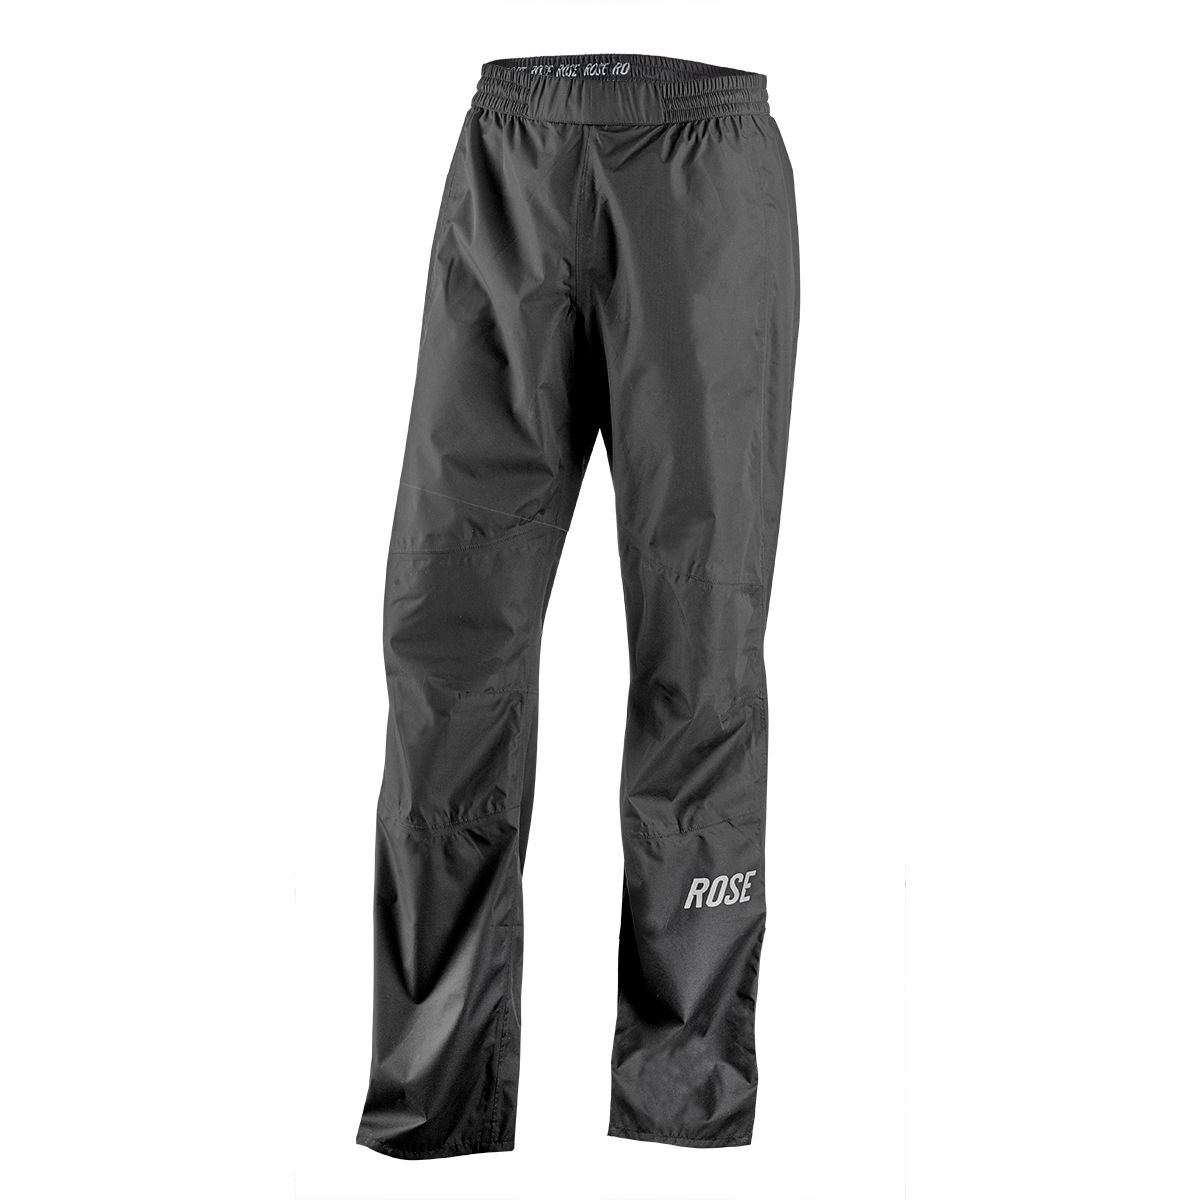 RH 06 waterproof trousers